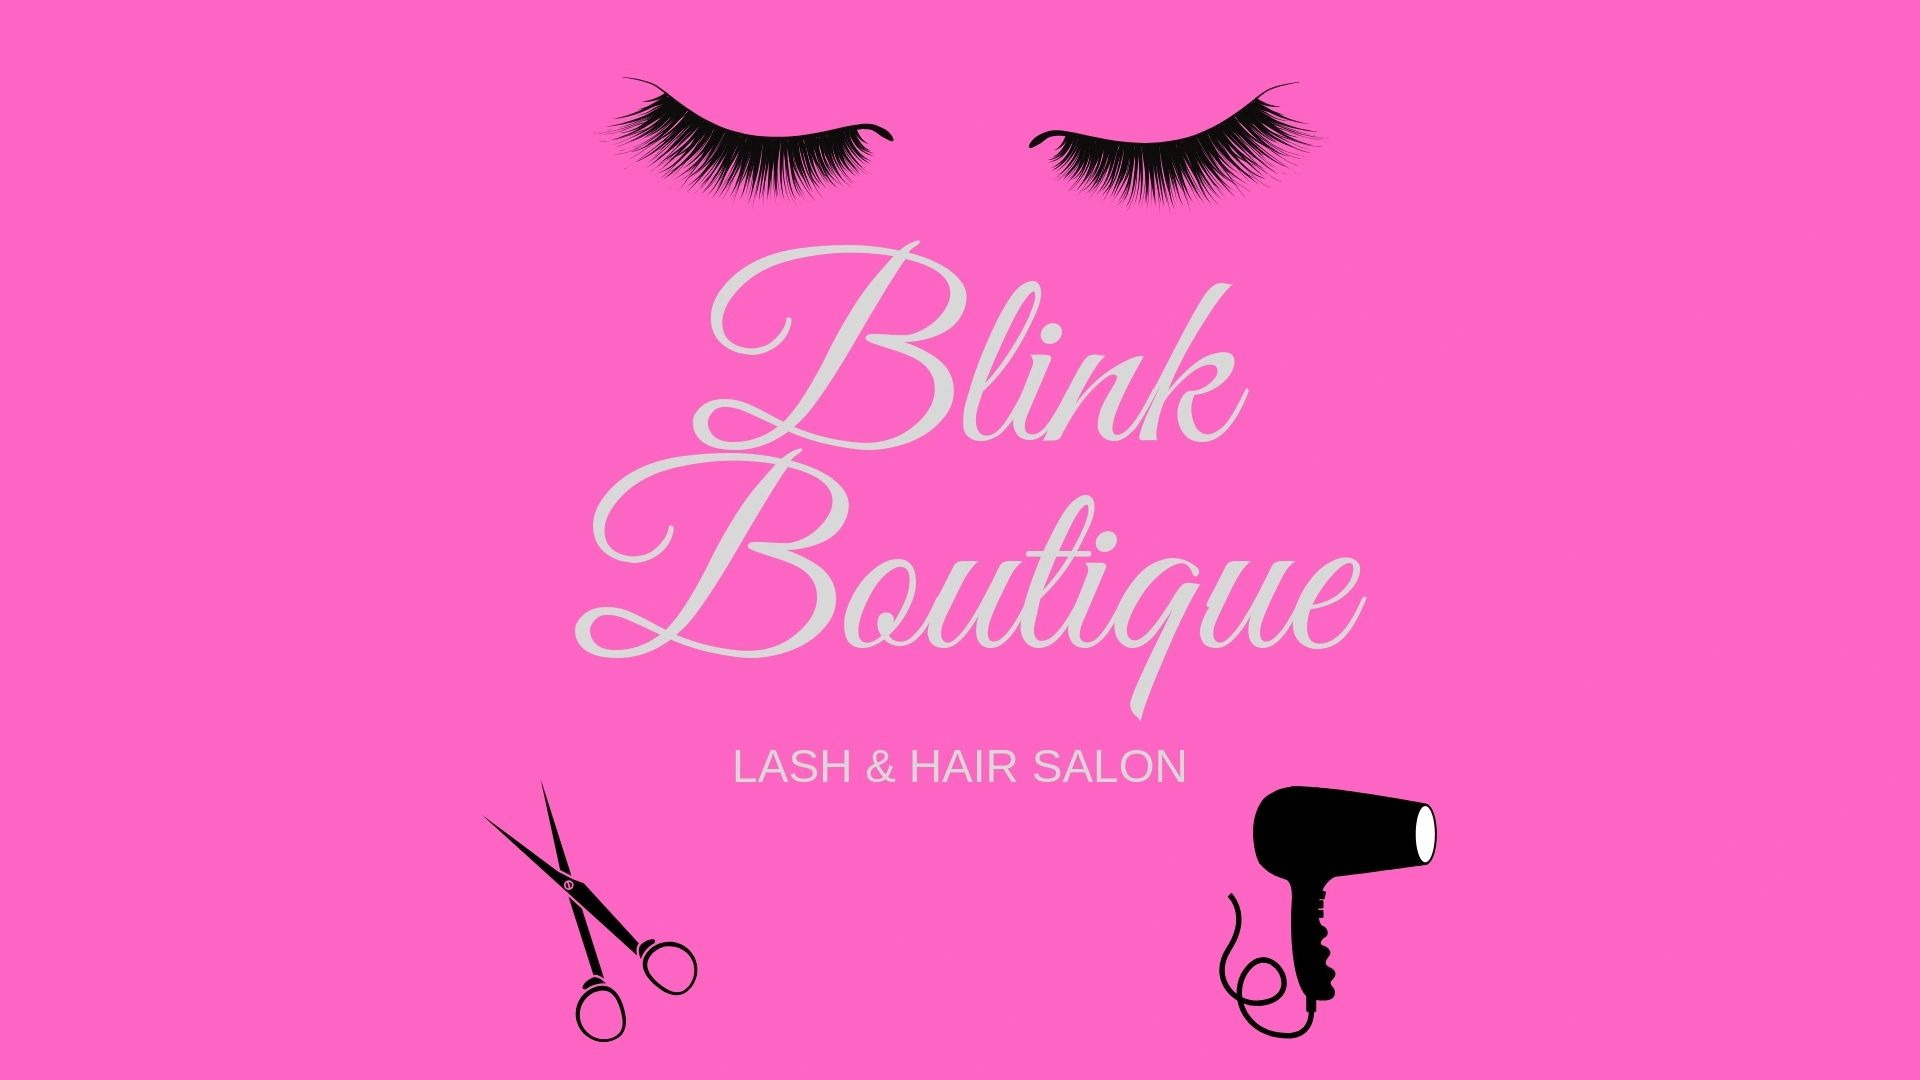 c383c69e73d Hair Salon in Myrtle Beach - Blink Boutique Lash And Hair Salon